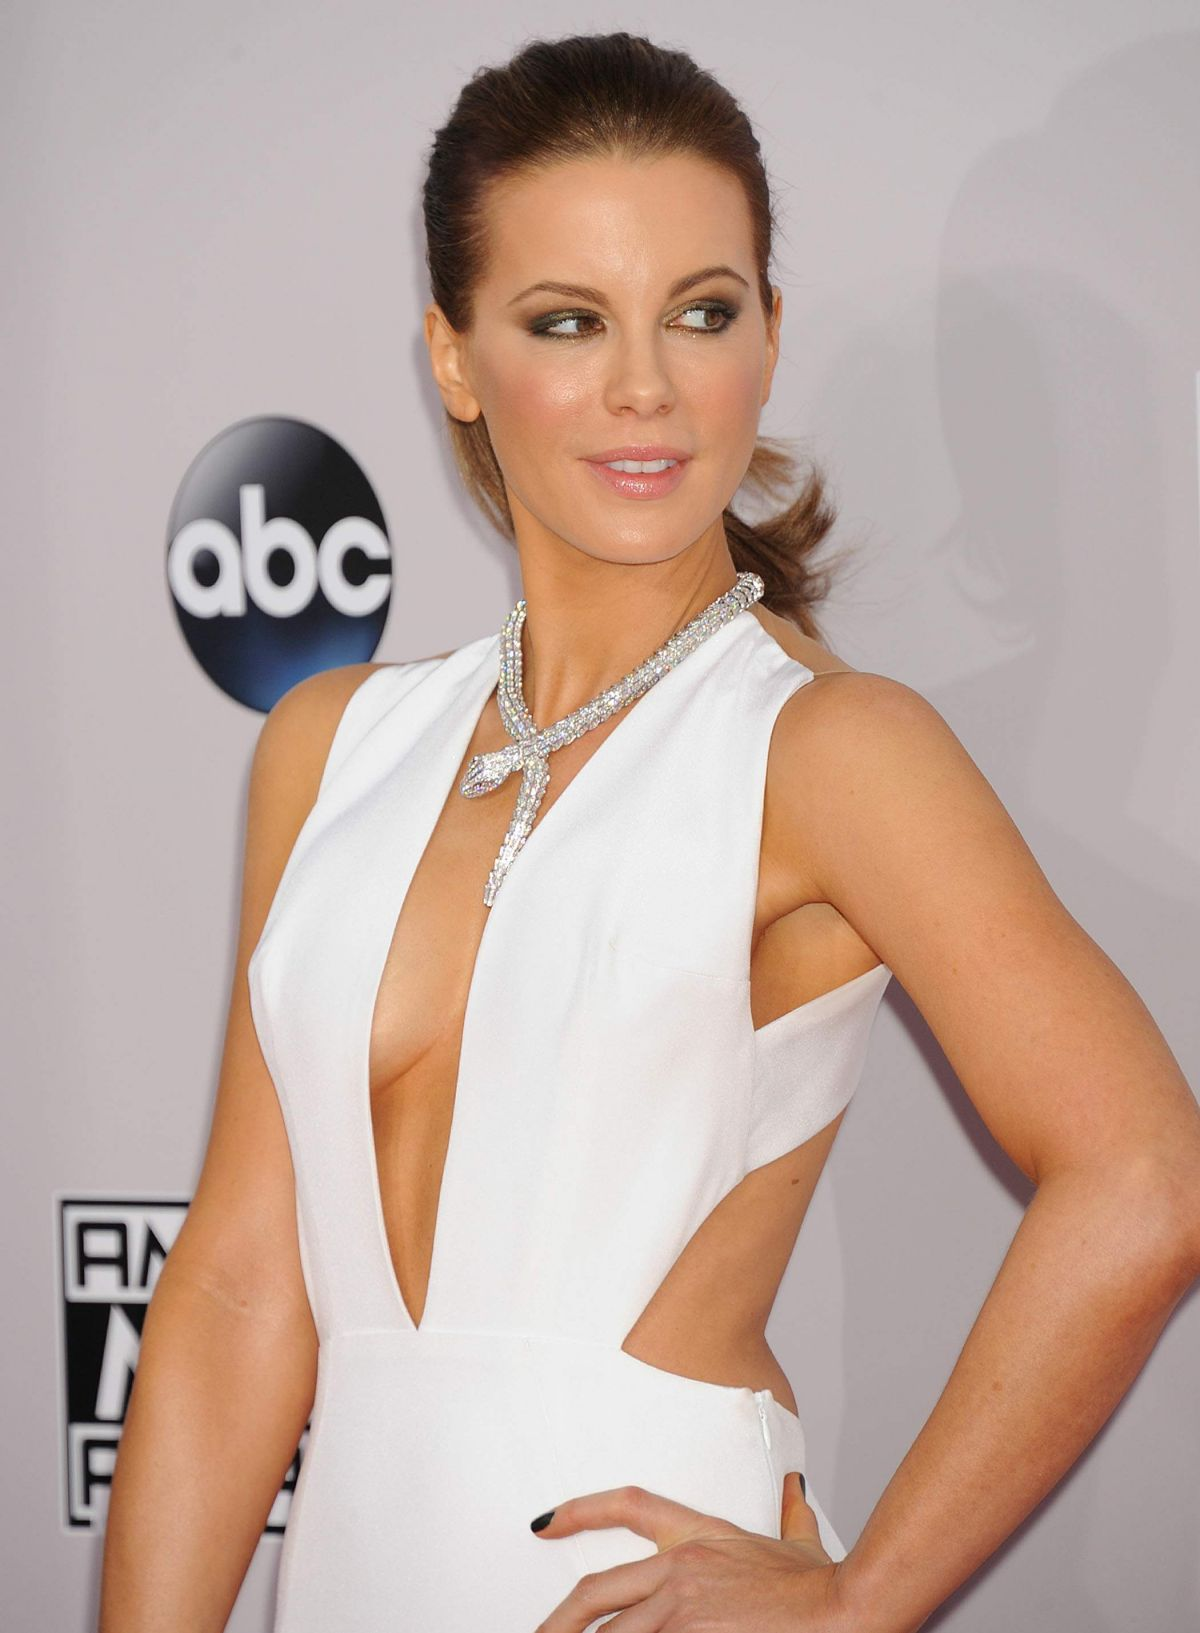 Kate Beckinsale Archives - Page 4 of 14 - HawtCelebs - HawtCelebs Kate Beckinsale